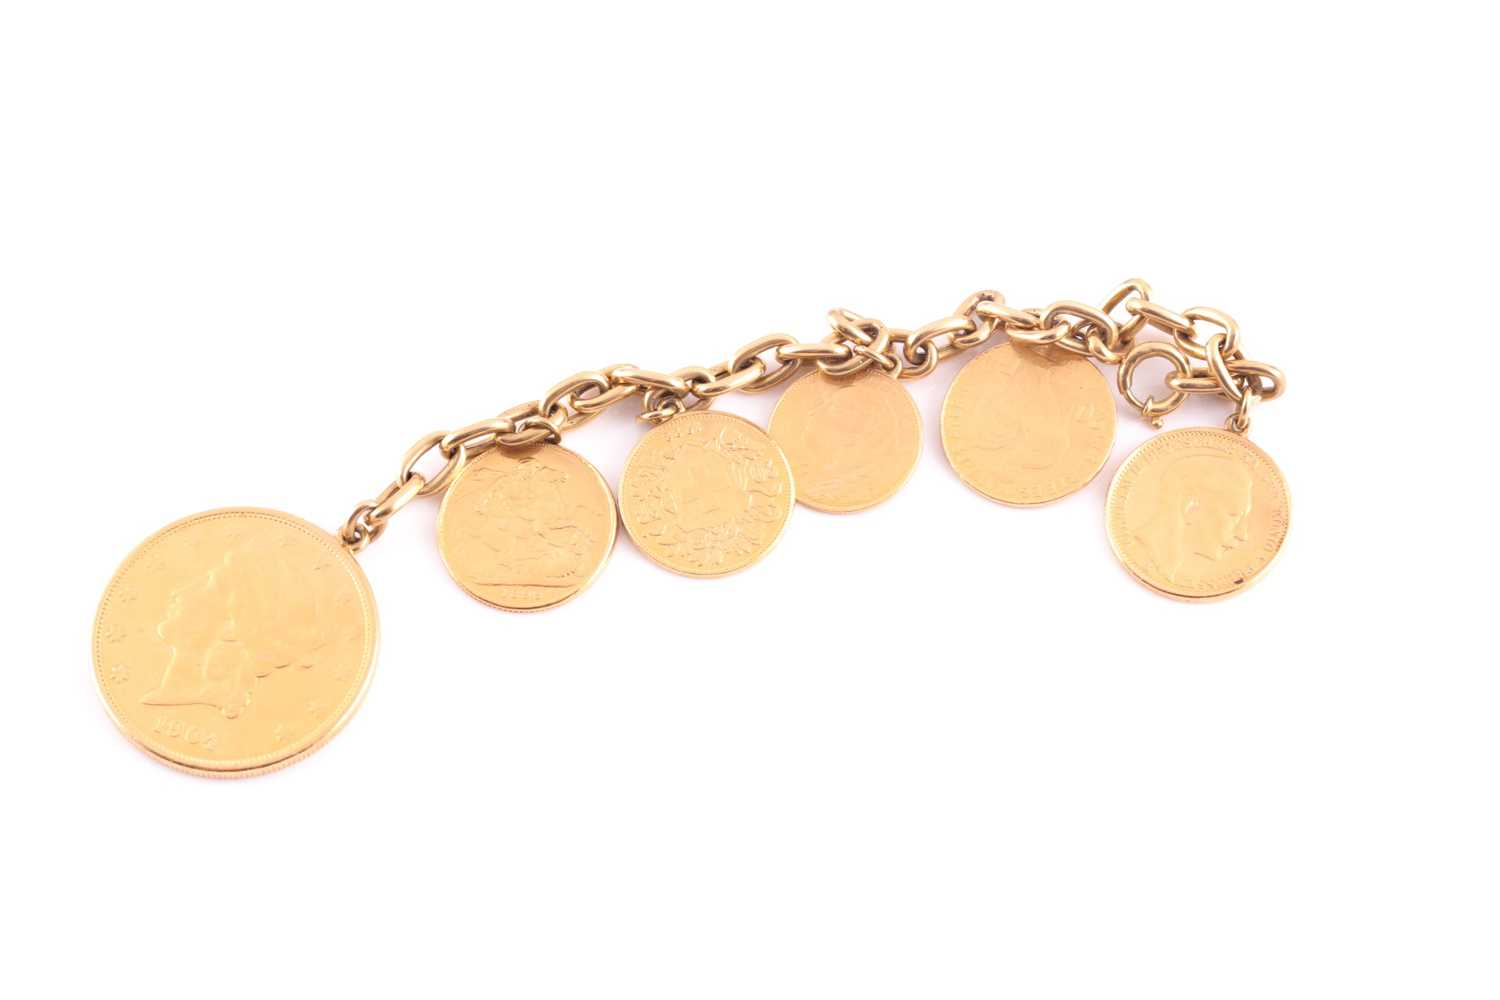 A yellow metal bracelet, suspended with six various fine gold coins, including an American 20 dollar